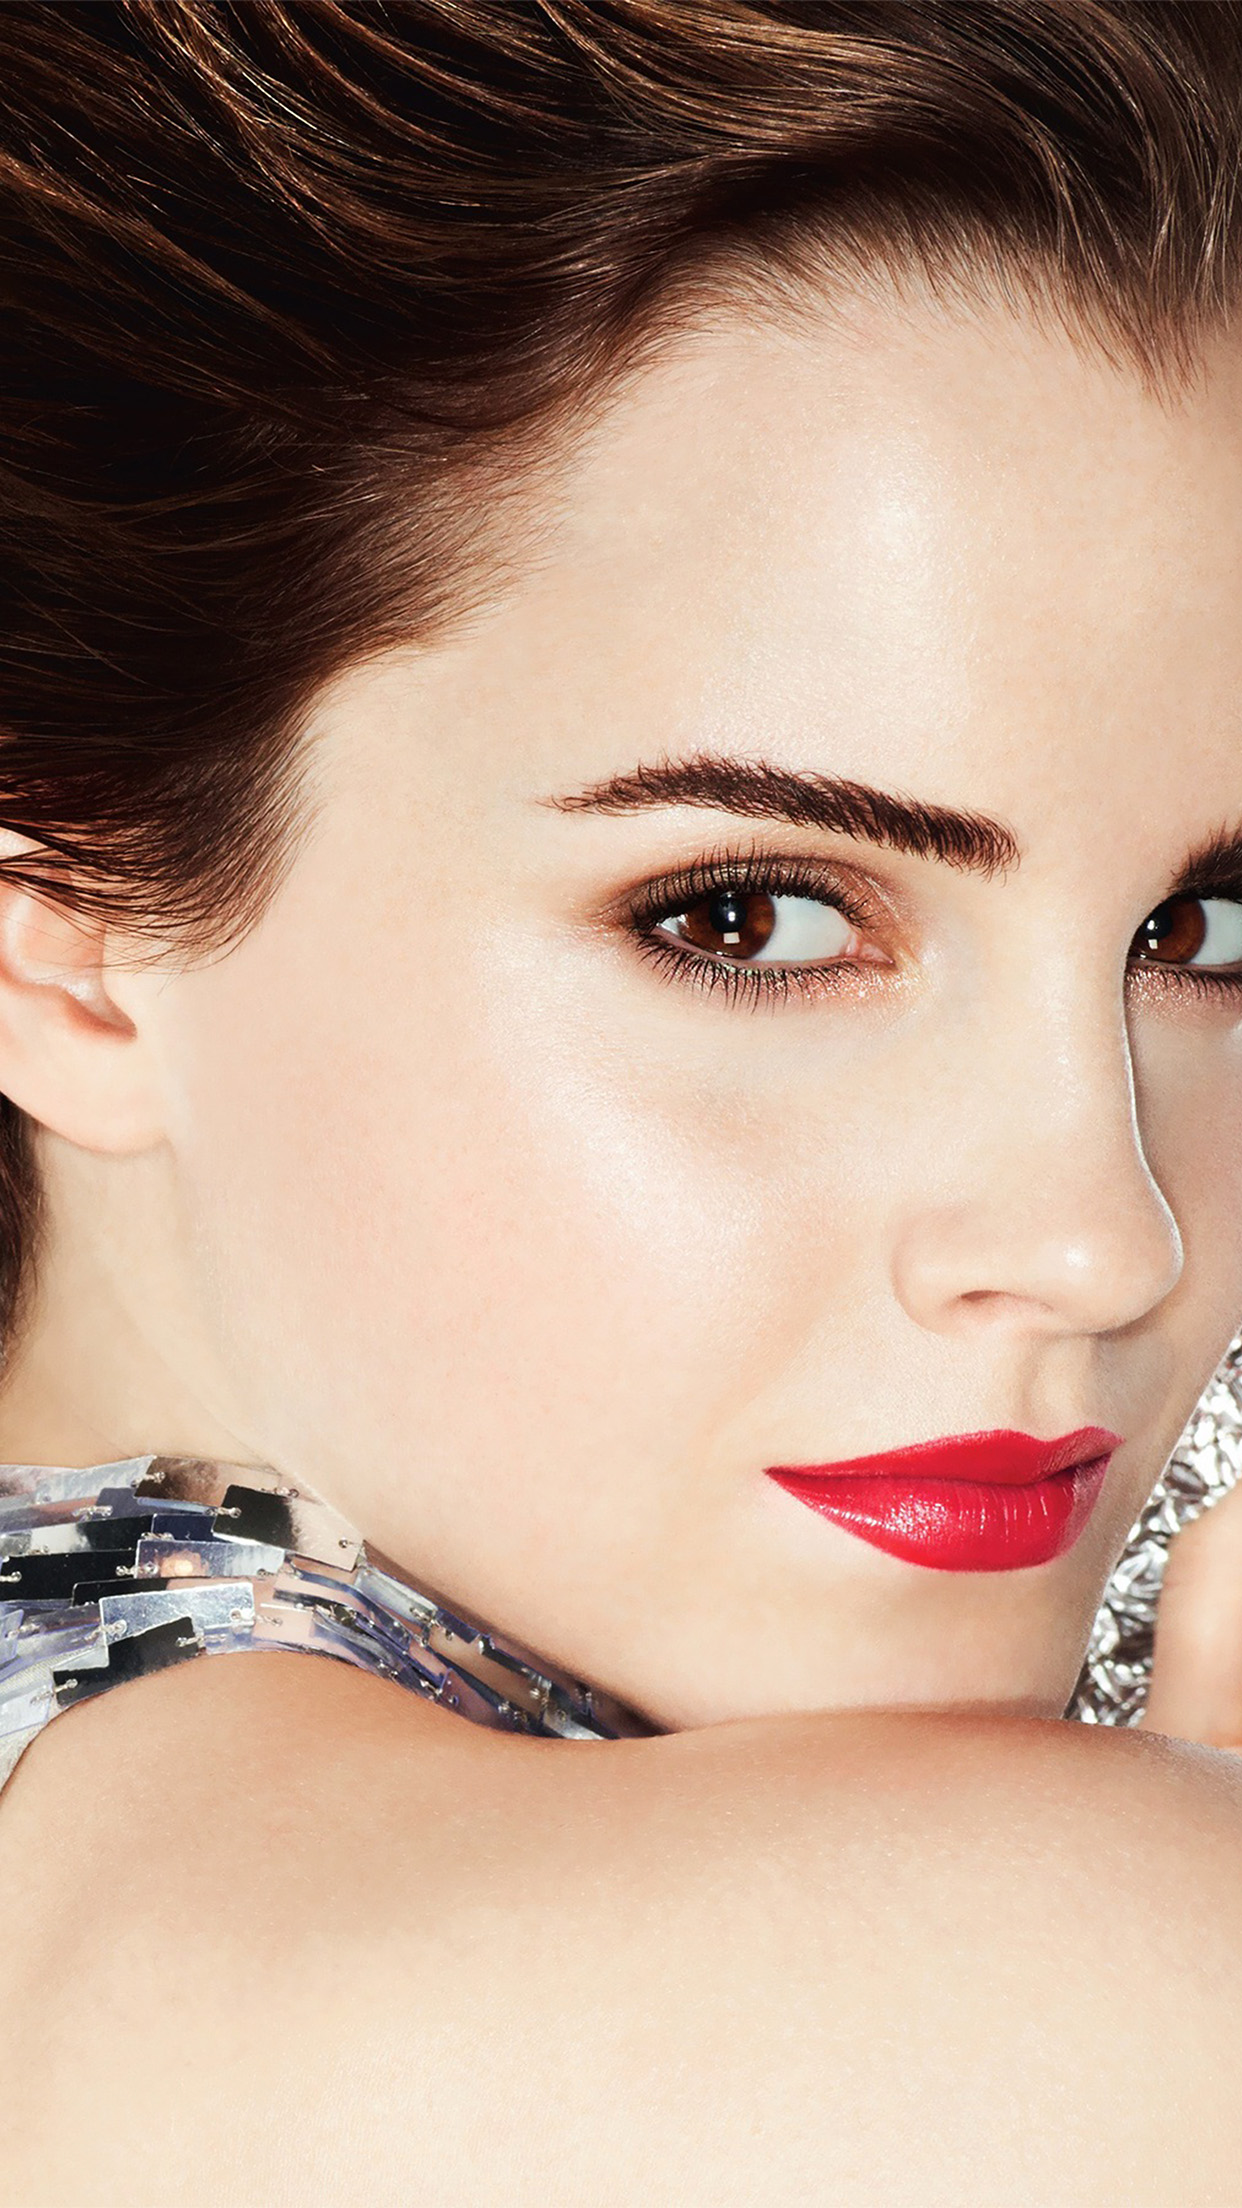 Emma Watson Emma Watson 3 3Wallpapers iPhone Parallax 3Wallpapers : notre sélection de fonds d'écran du 20/11/2016